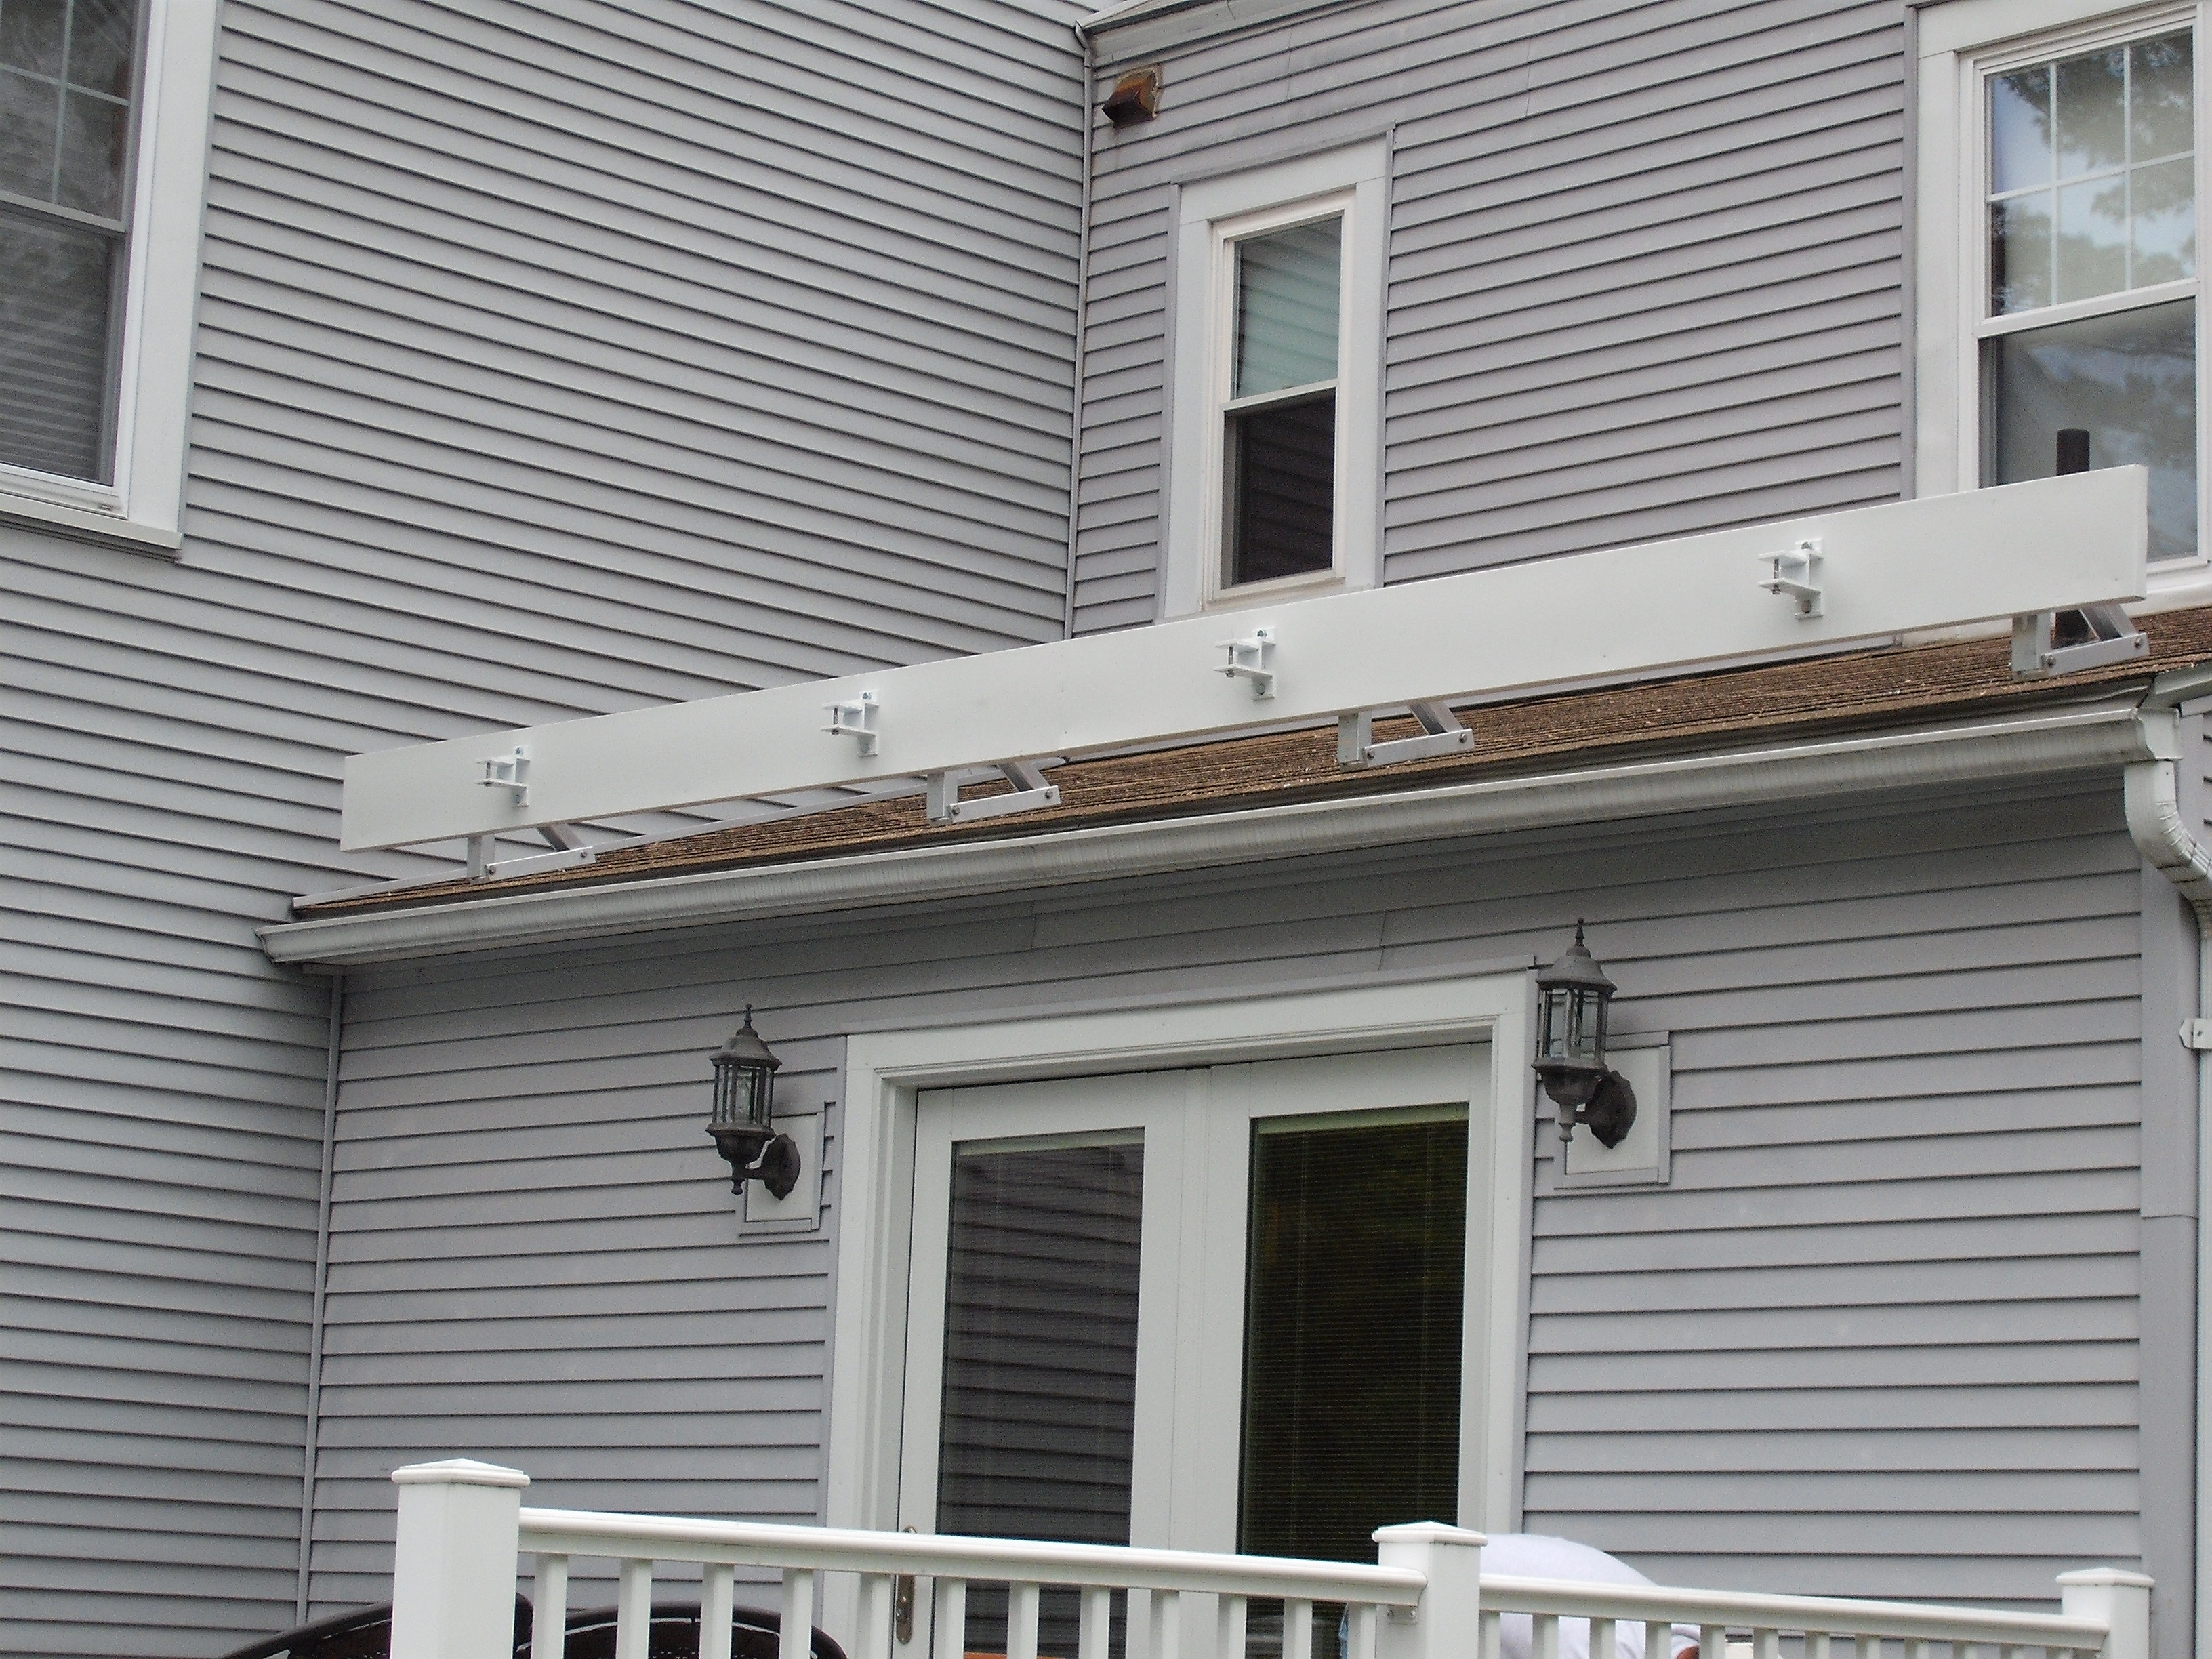 retractable-awning-roof-mount-application - Leisure Time ...